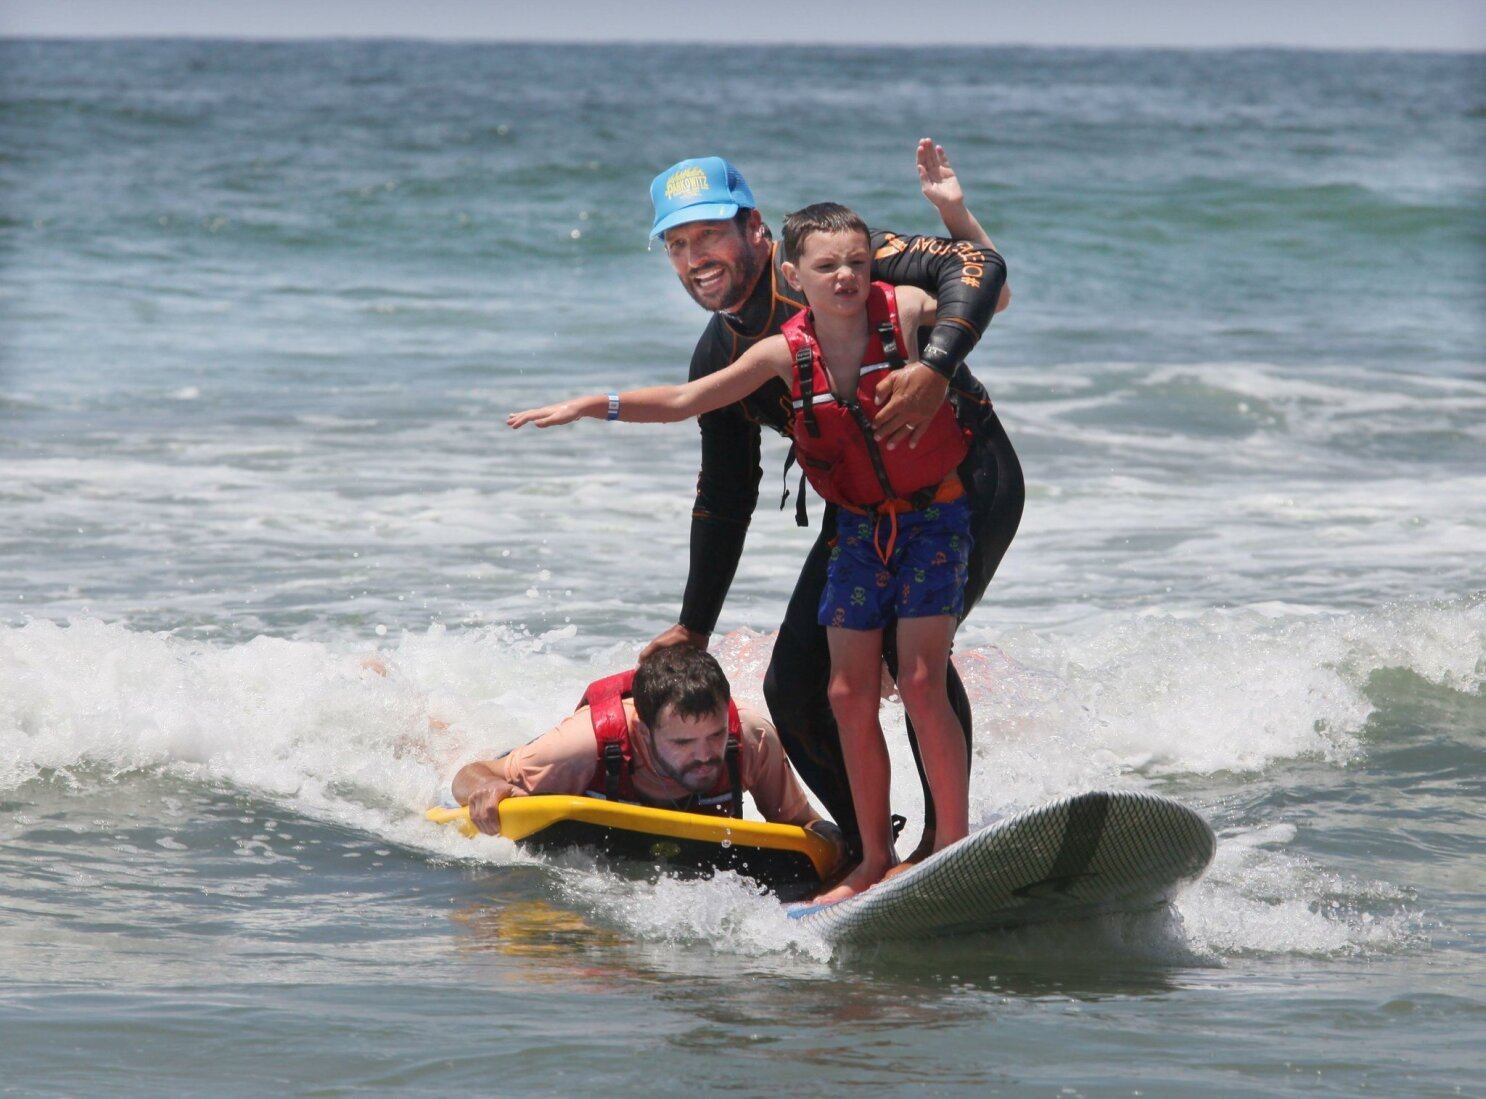 It Is Time To Revive Autism Movement >> Autism Symptoms Wash Away At Surf Camp The San Diego Union Tribune